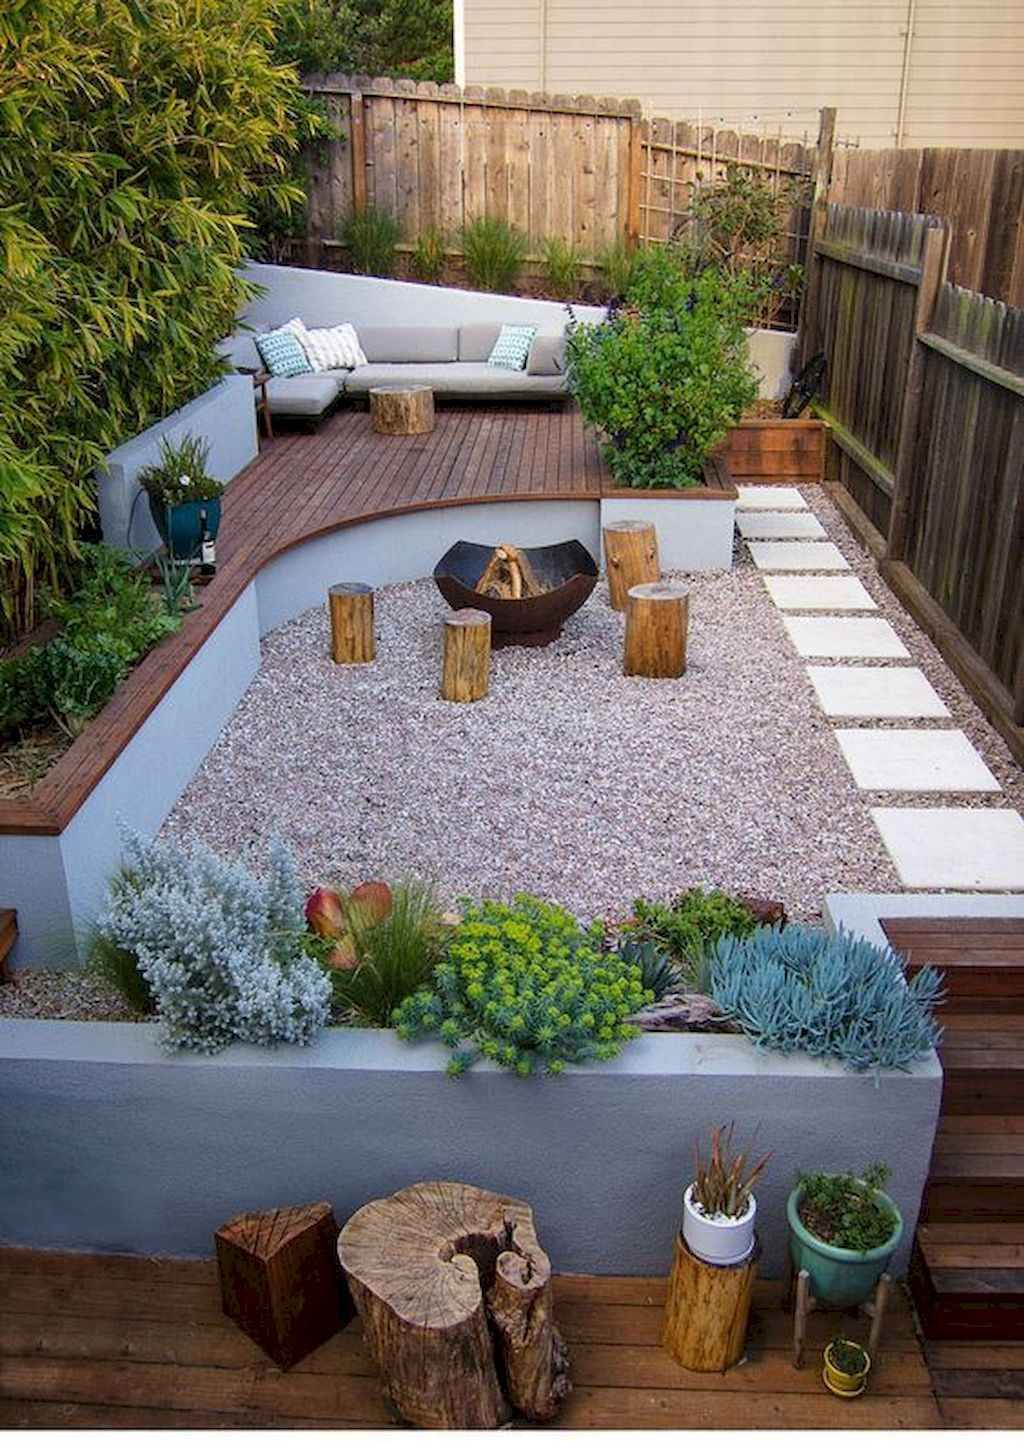 50 Cozy Backyard Seating Area Ideas Small backyard